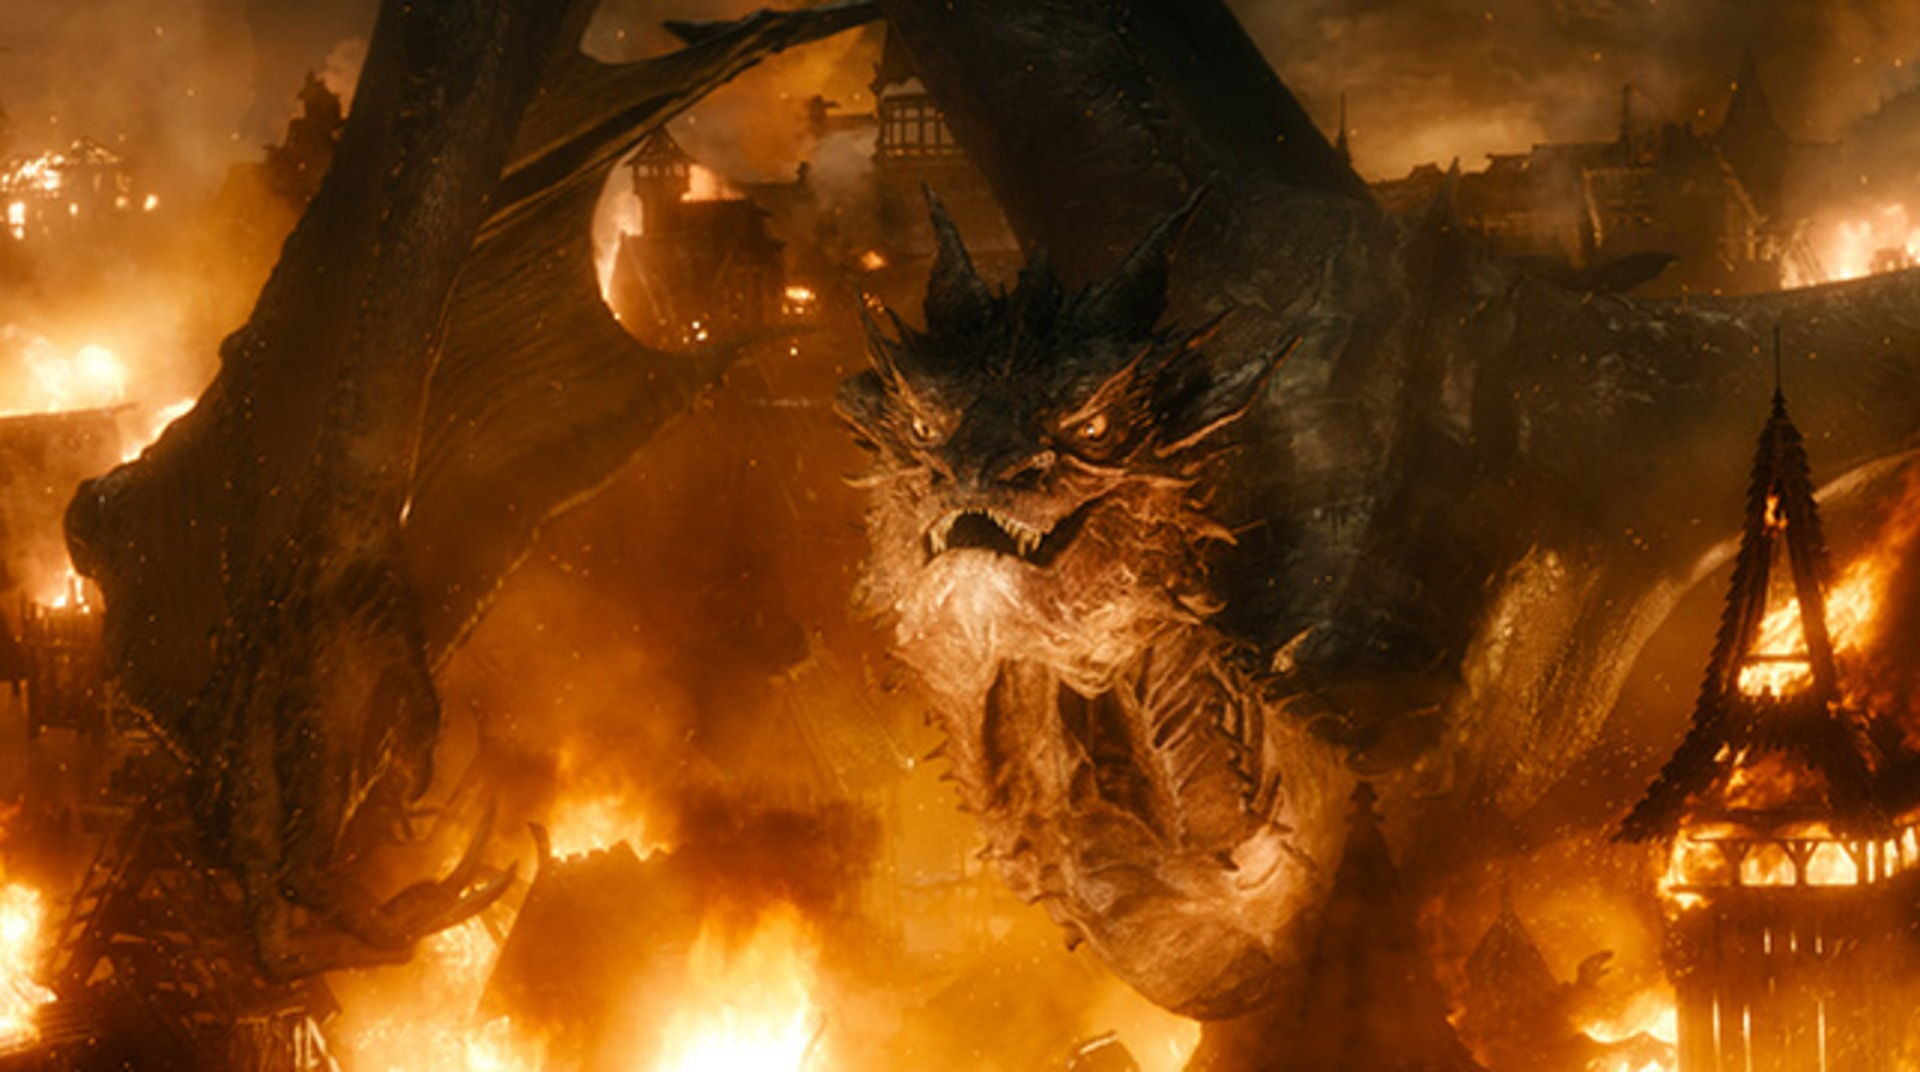 The Hobbit: The Battle of the Five Armies - Image 20